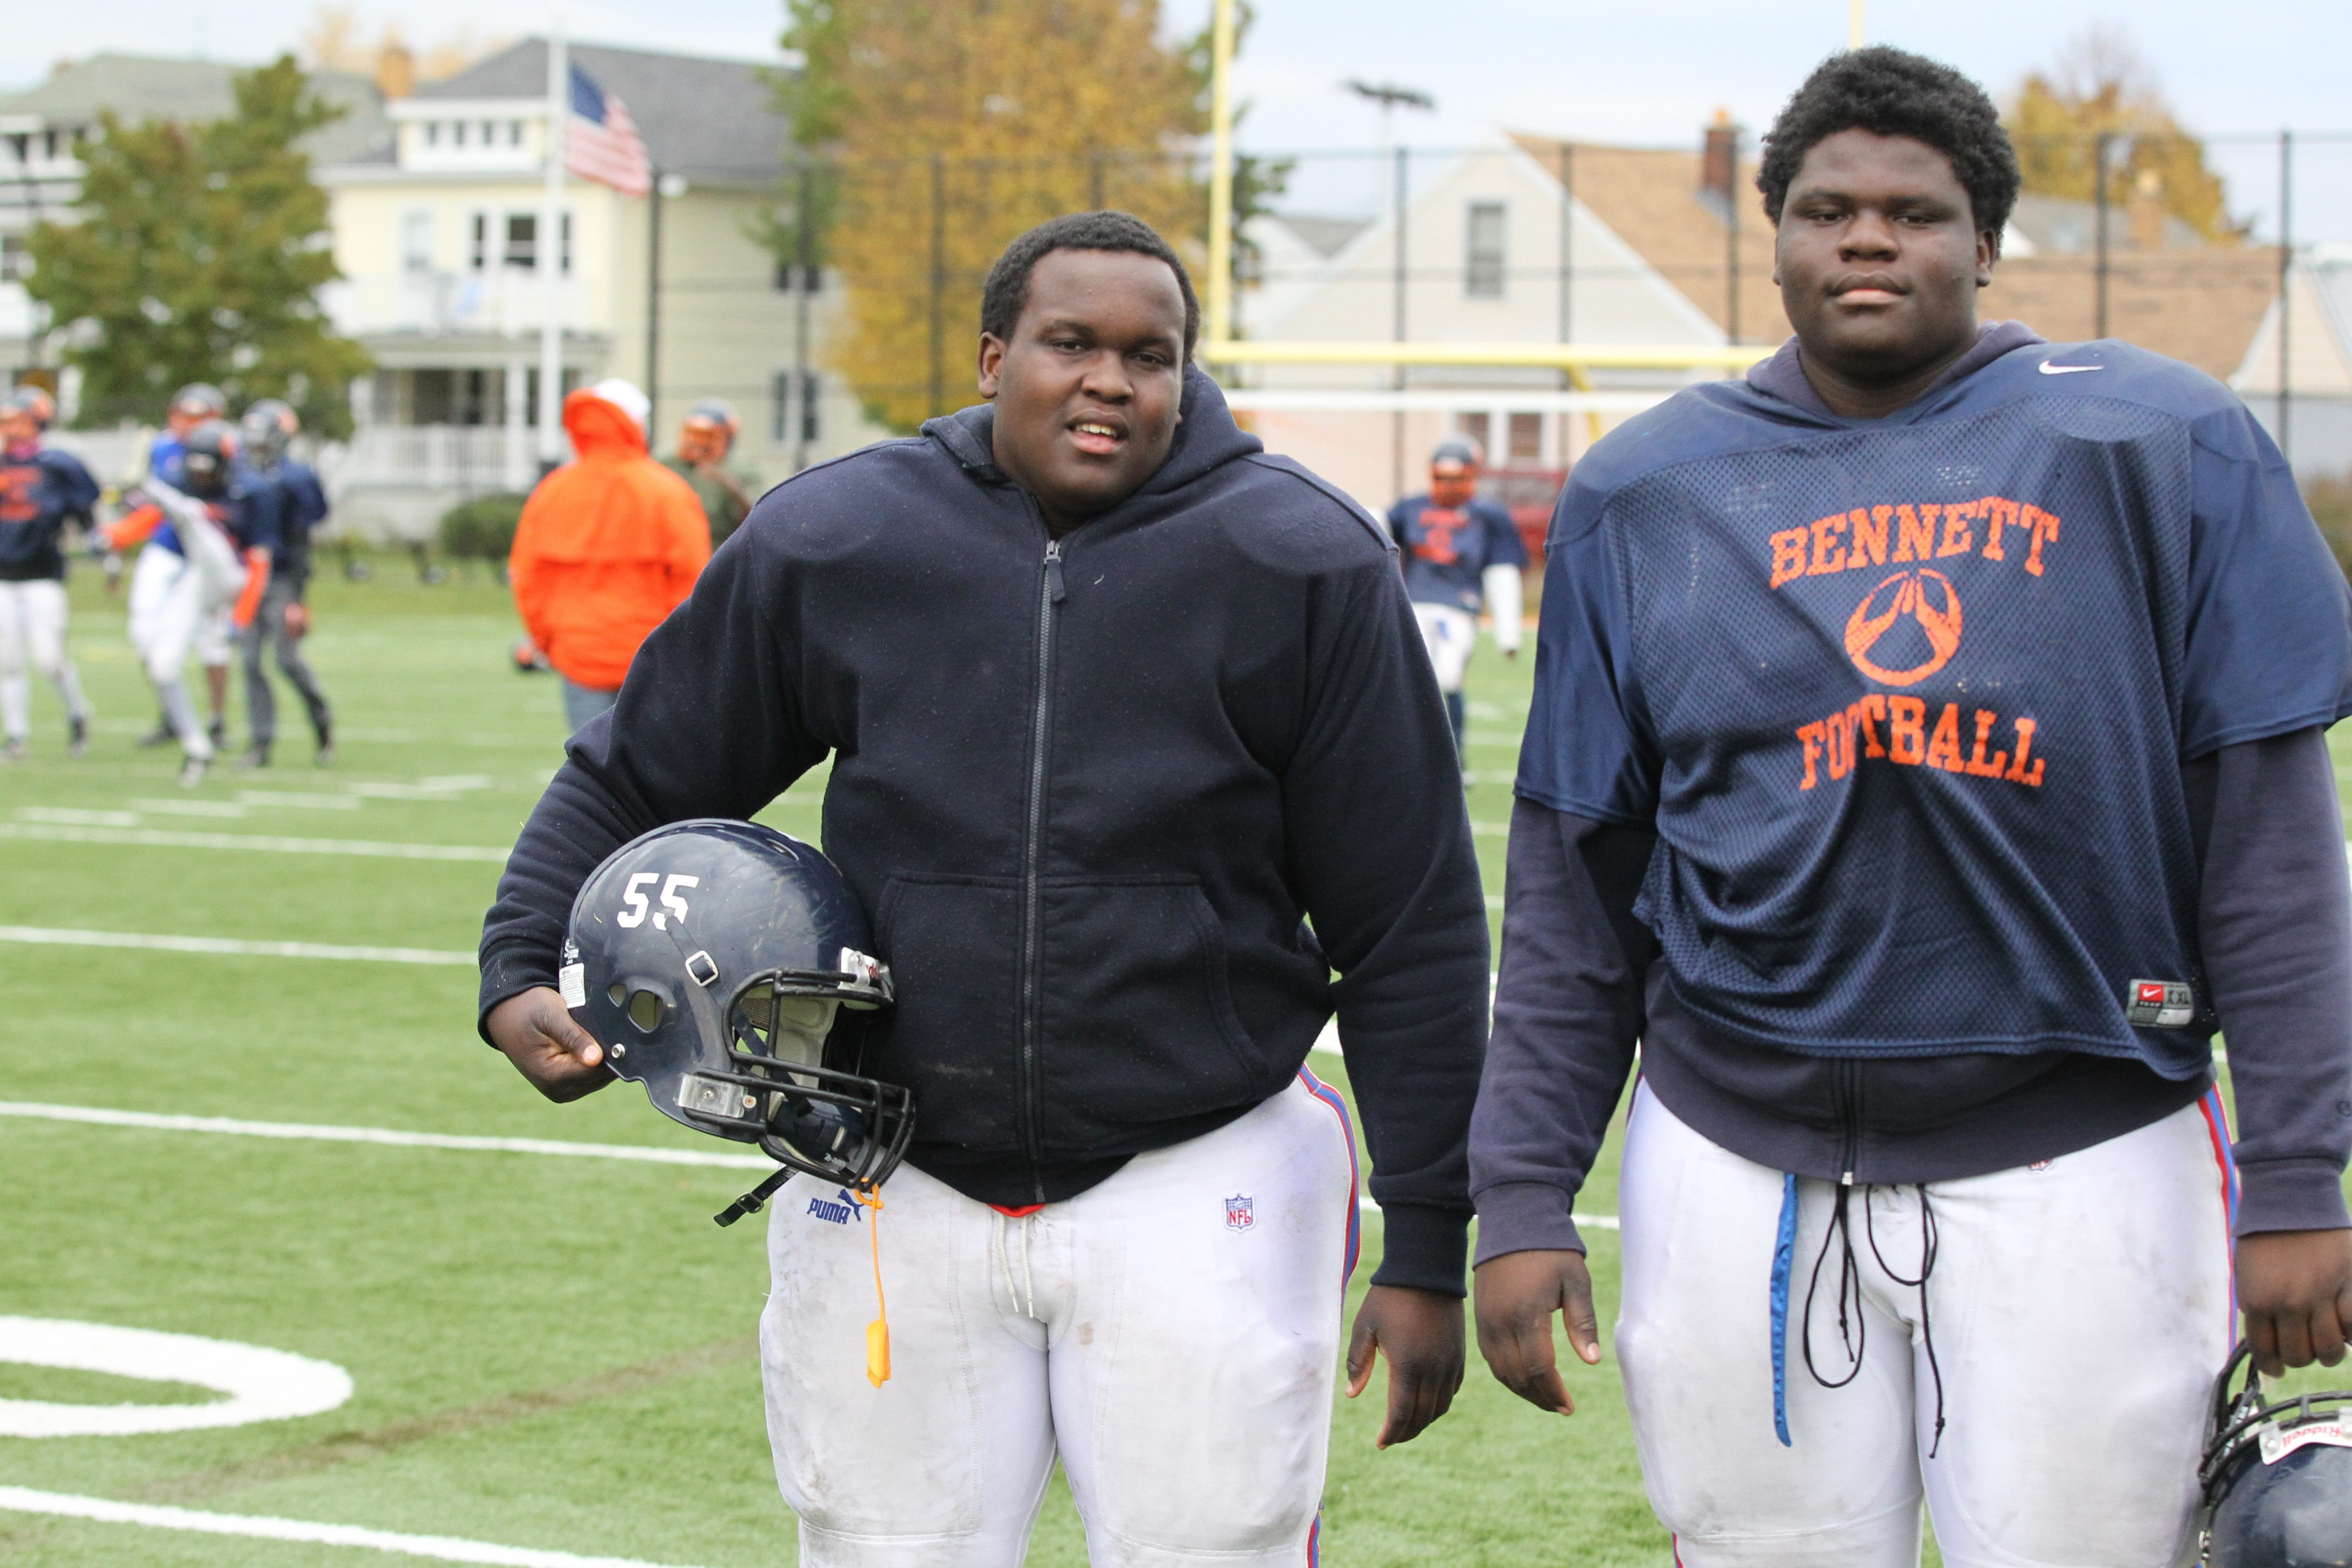 From left, Bennett's Darnell and Jeremiah Sanders will oppose their brother Darlell (Burgard) on Saturday.